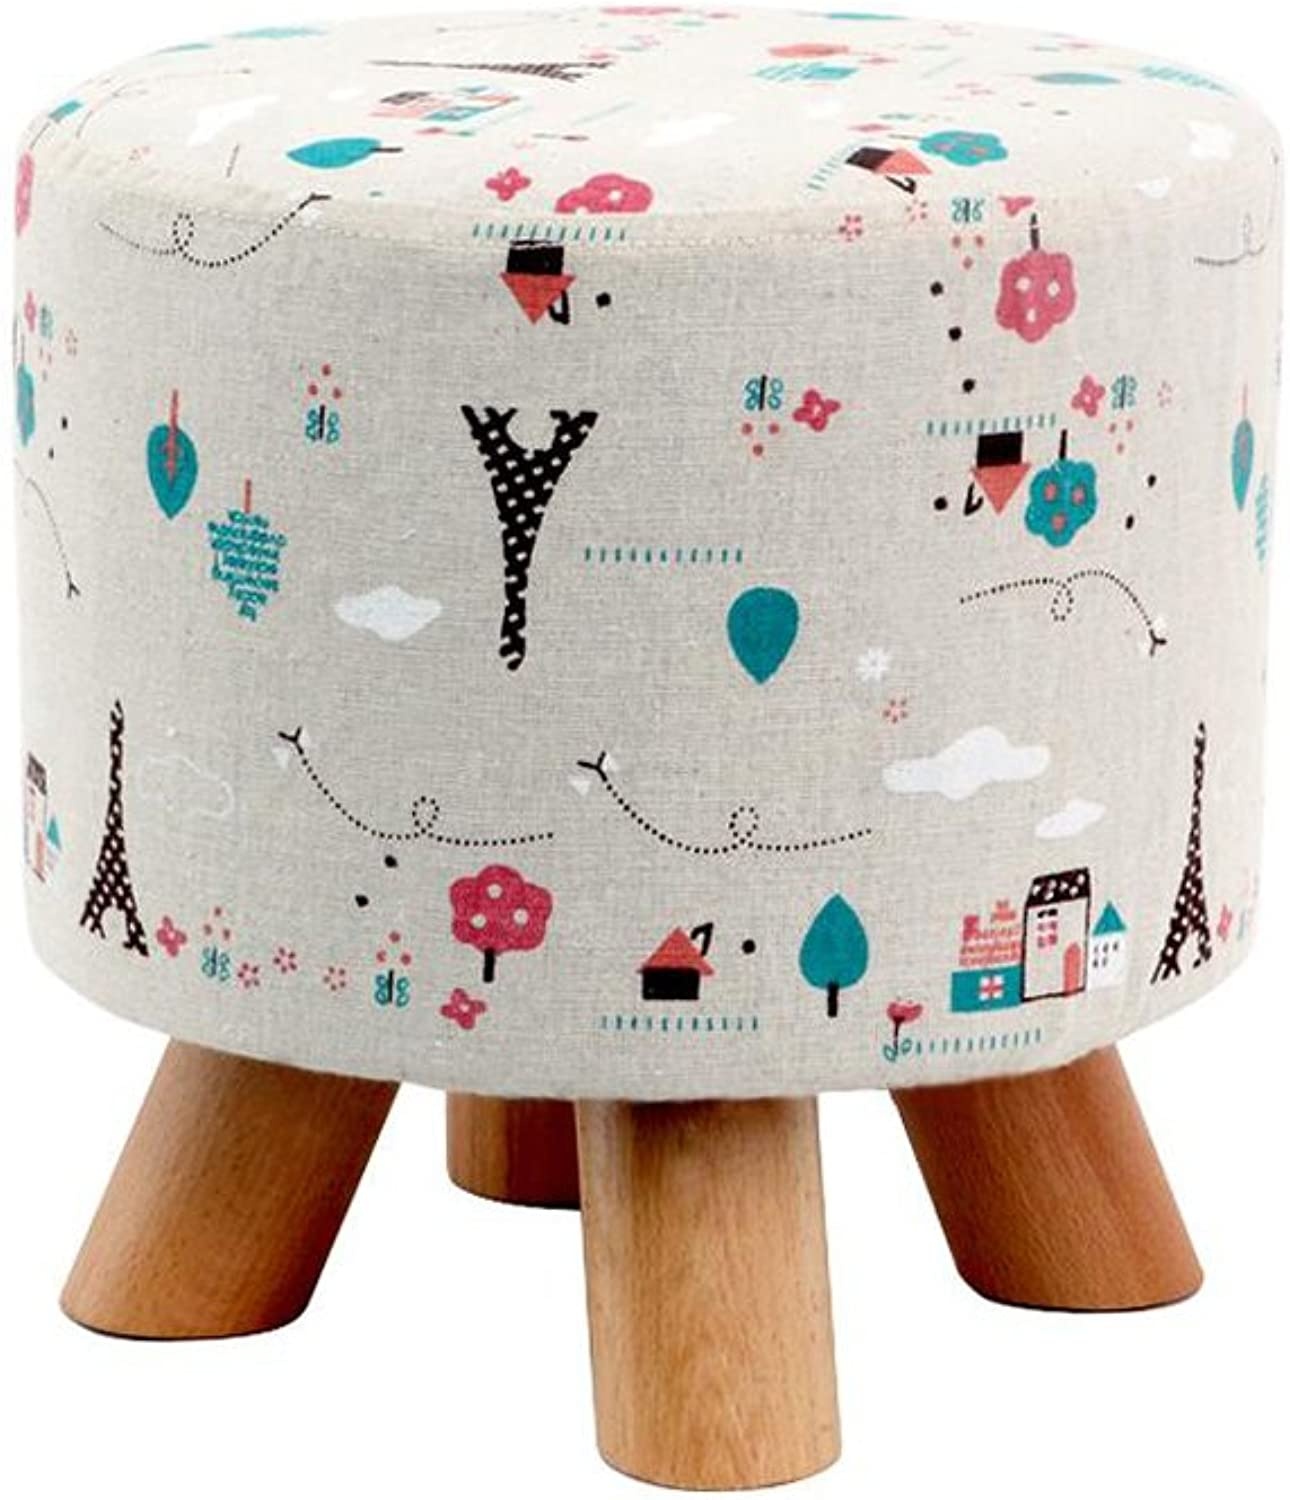 YCS shoes Stool Sofa Stool Low Stool Wood Cloth Surface Round Home Living Room (color   2)